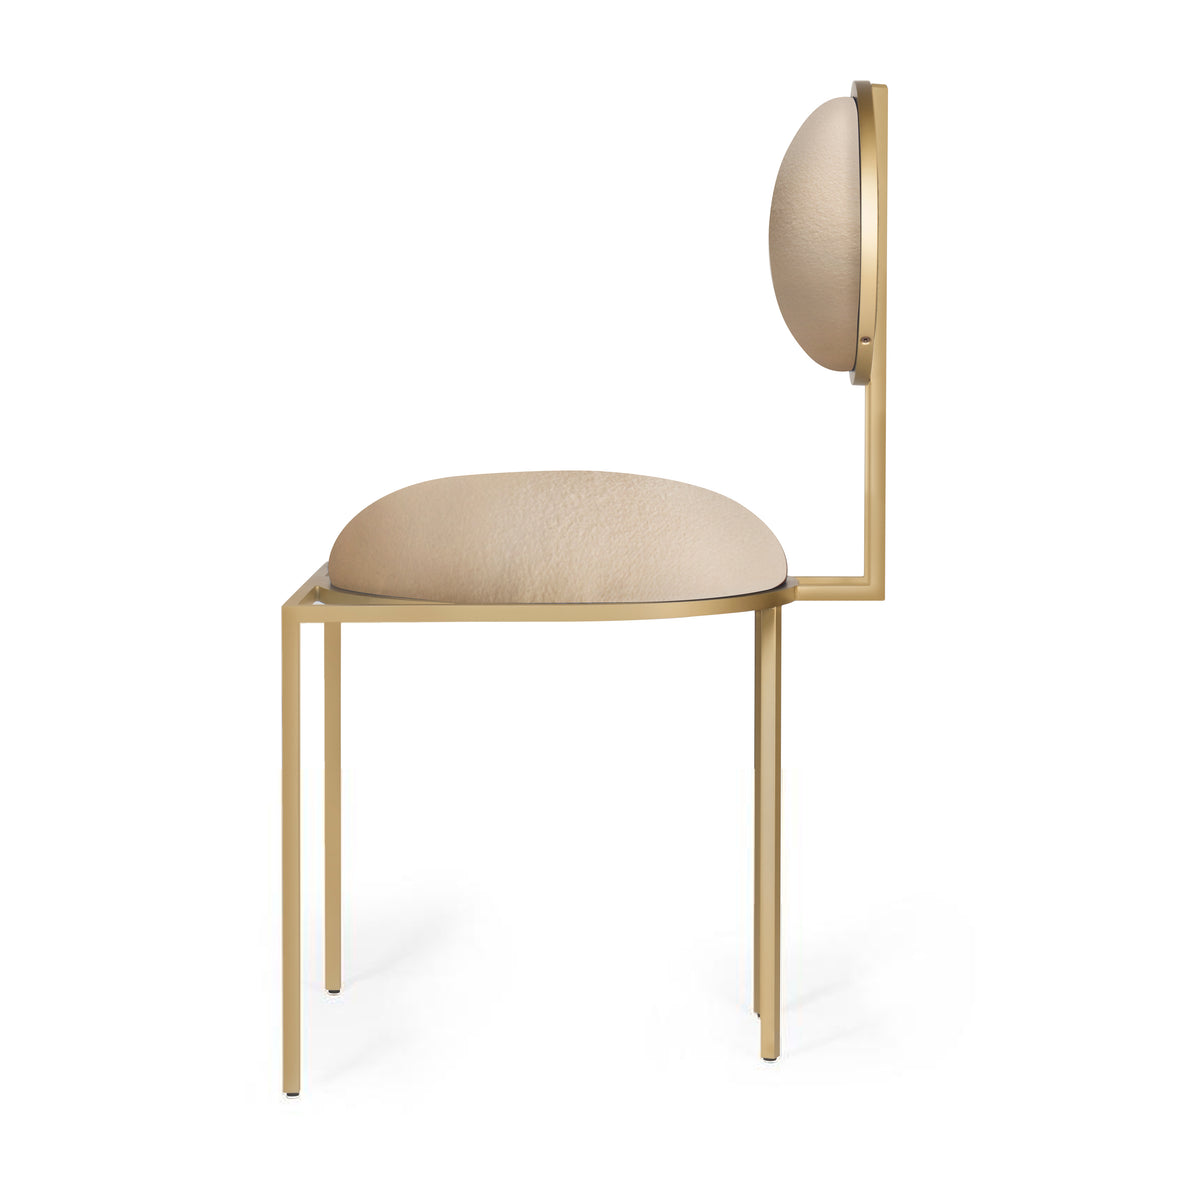 ORBIT DINING CHAIR - CREAM